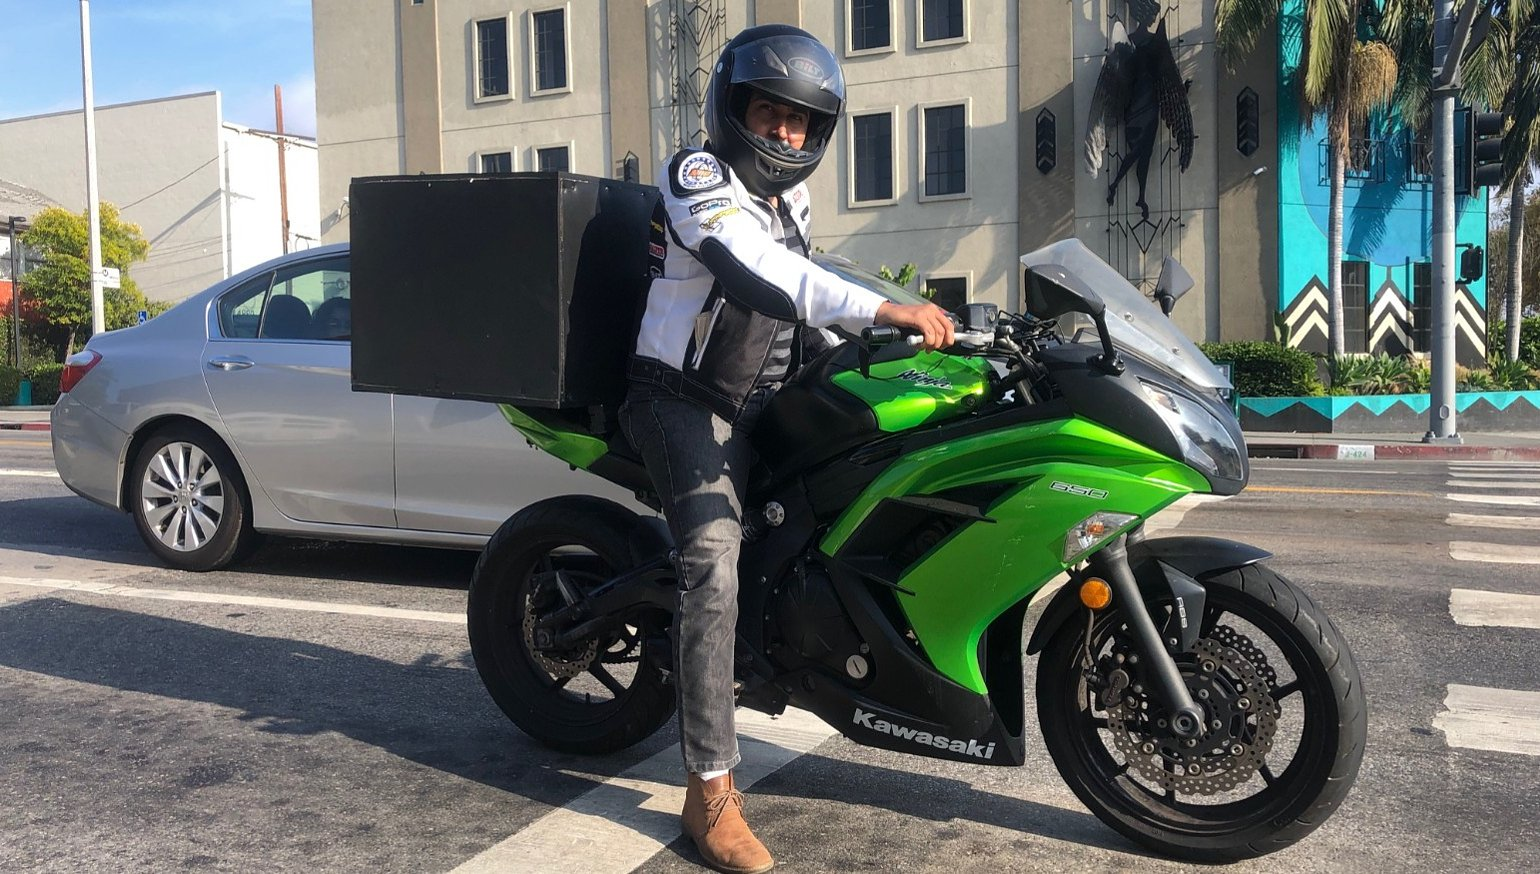 Two-wheel side hustle: Delivering food on your motorcycle